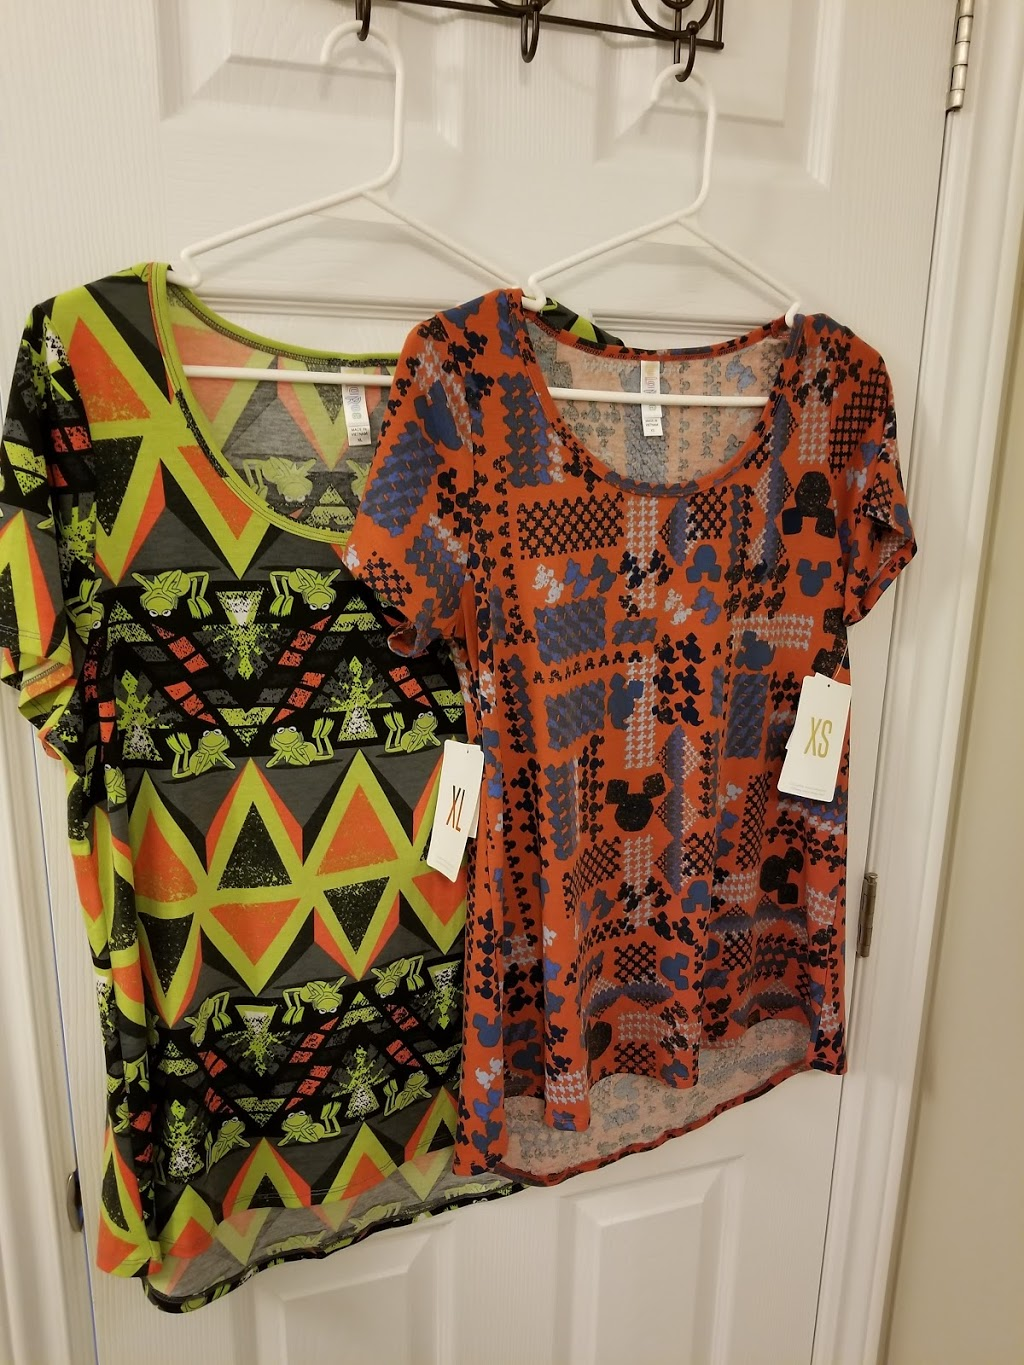 Miss. Ts Fashion   clothing store   191 Ottawa St, Limoges, ON K0A 2M0, Canada   6133196613 OR +1 613-319-6613